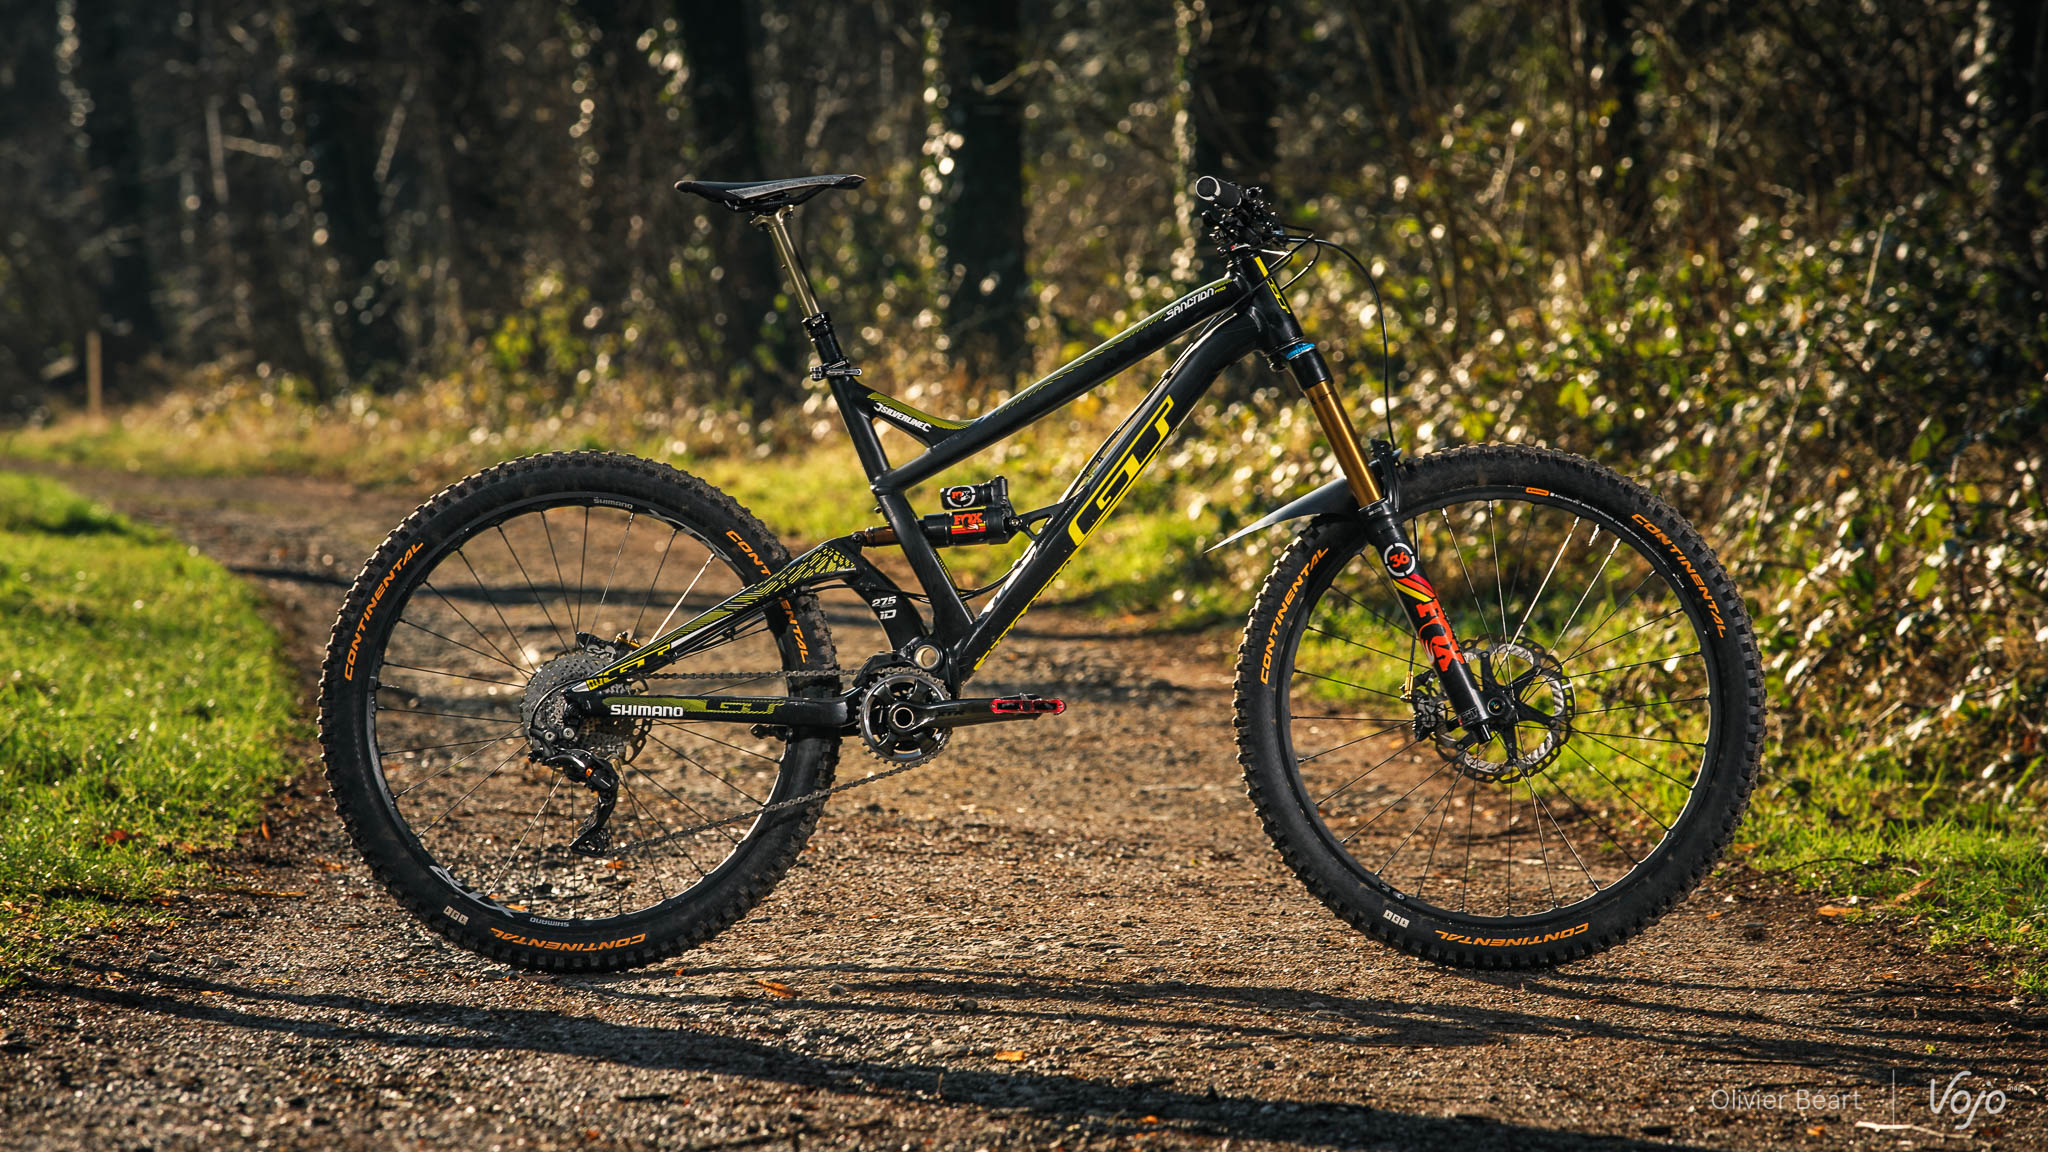 Martin_Maes_GT_Sanction_MTB_Bike_Check_Copyright_OBeart_VojoMag-3